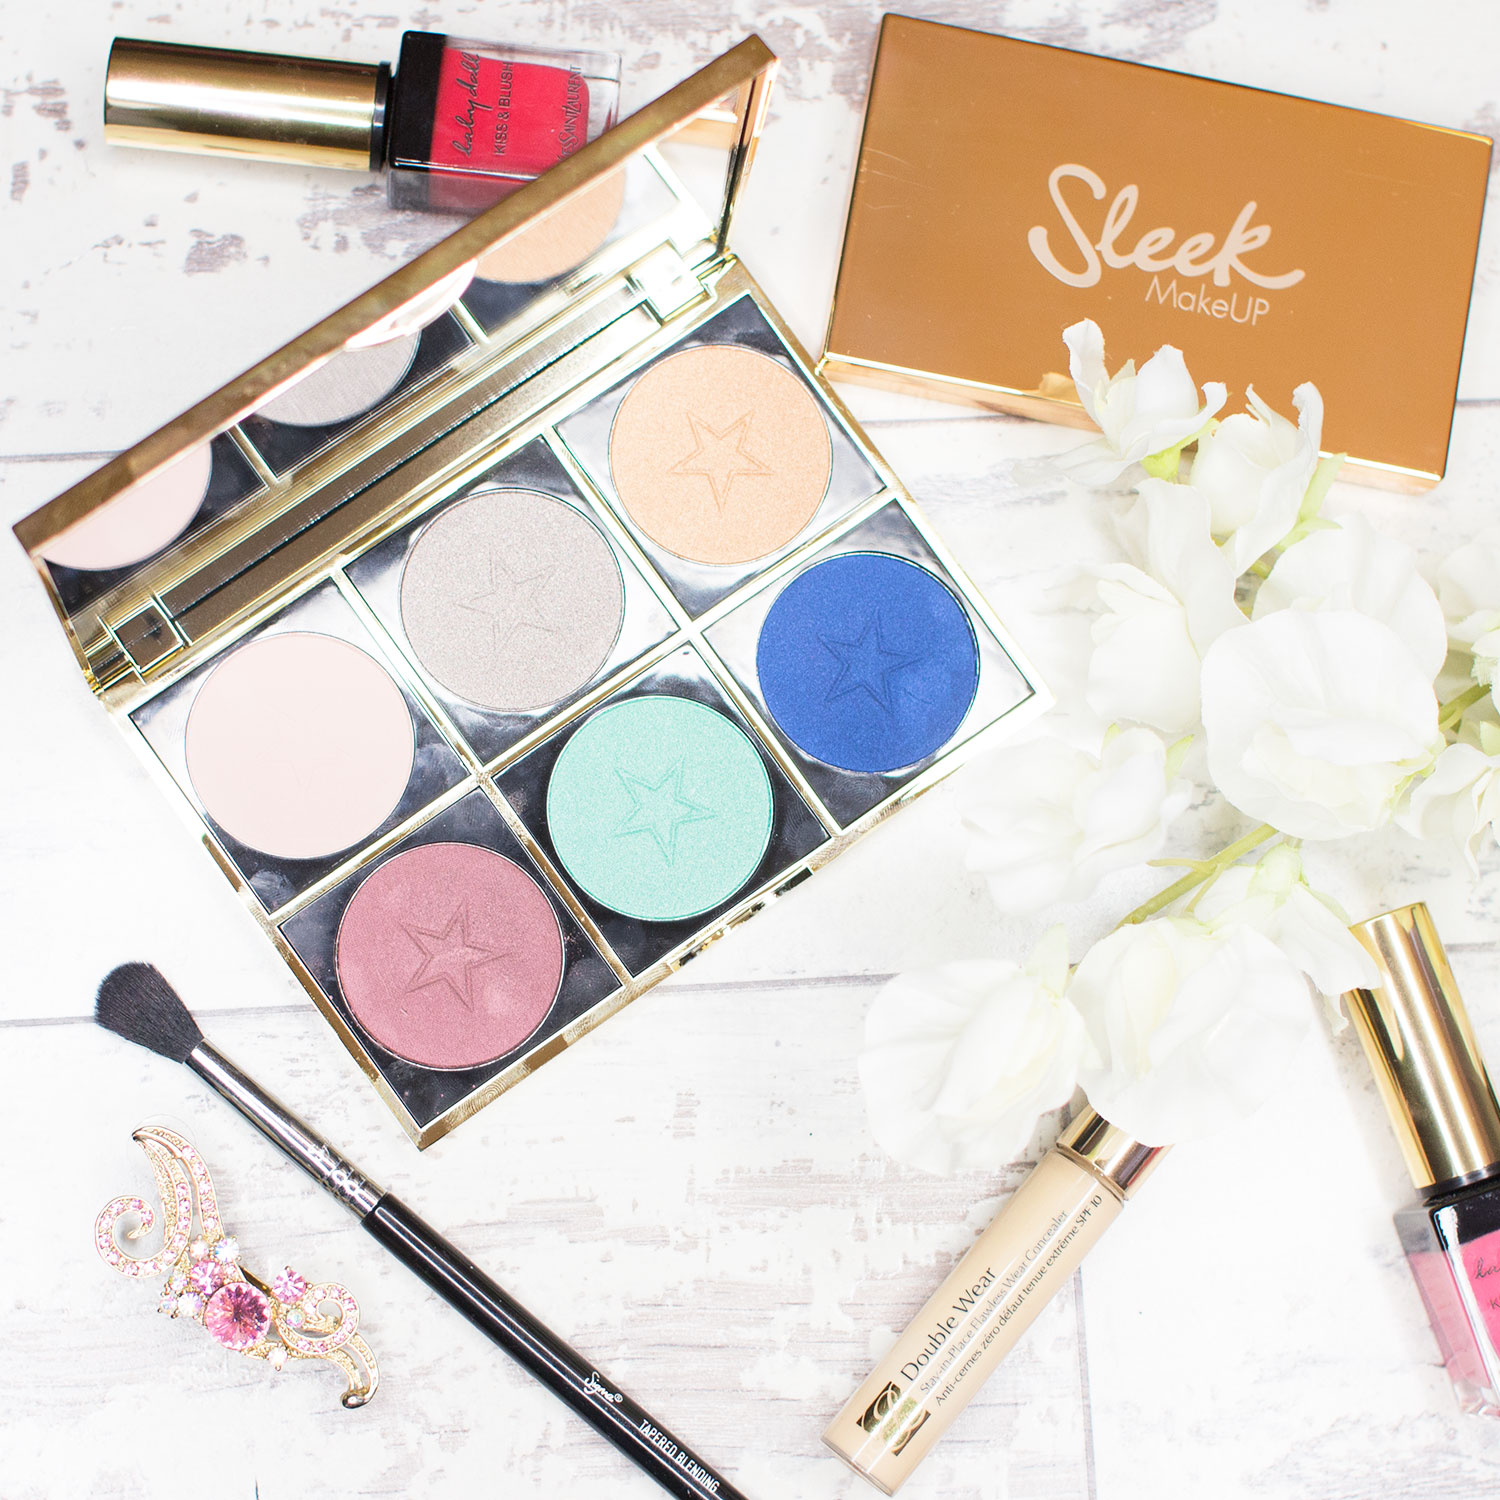 Beautyqueenuk | A UK Beauty and Lifestyle Blog: Customise